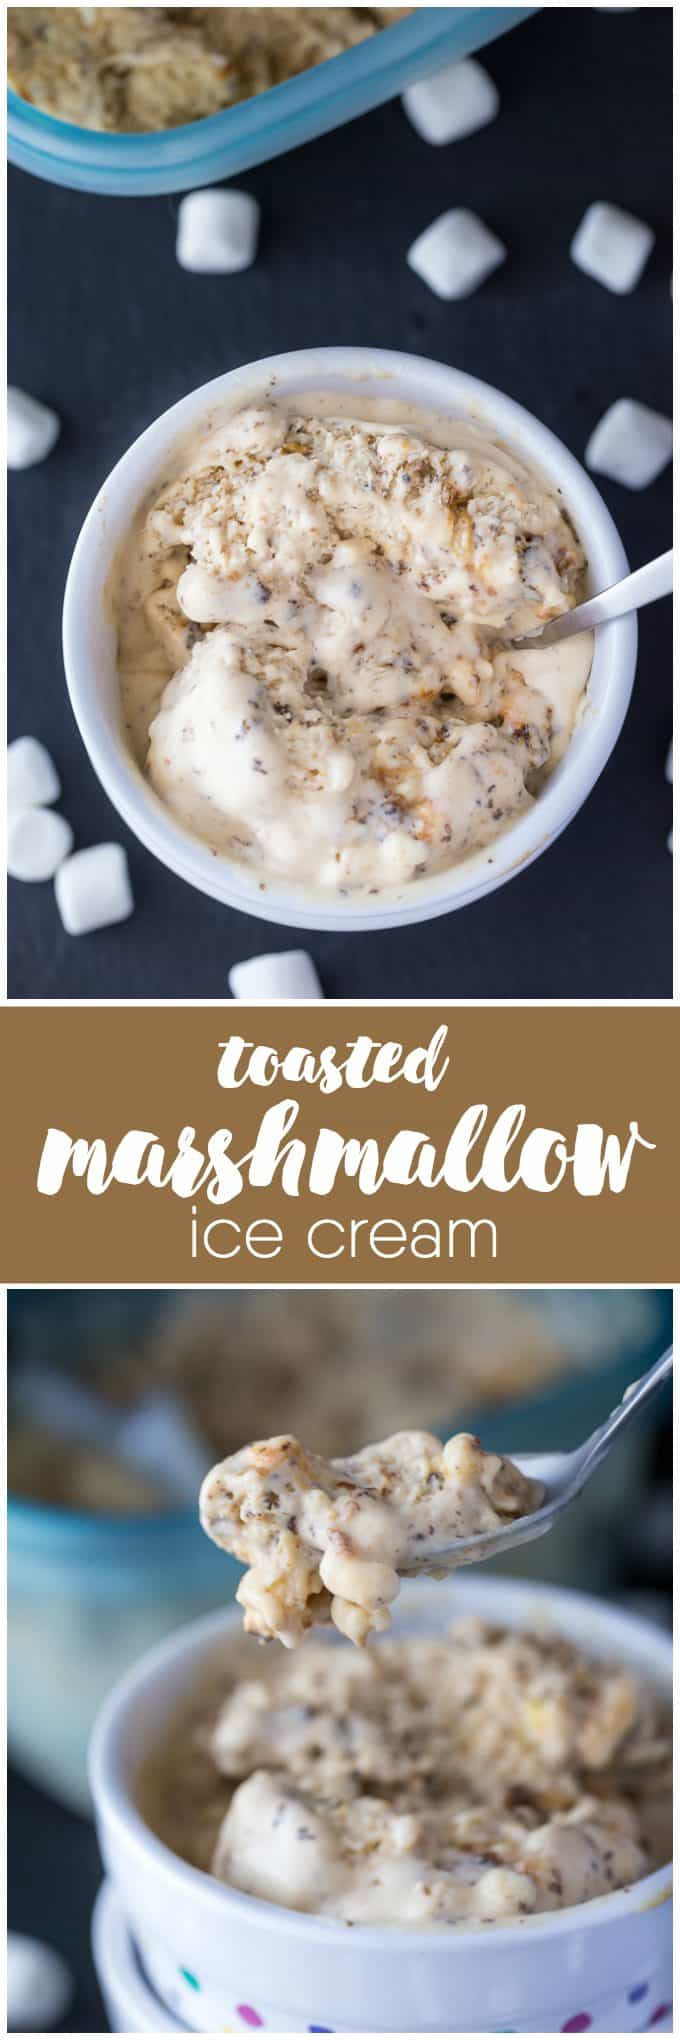 Toasted Marshmallow Ice Cream - Only THREE ingredients in this simple no-churn ice cream recipe! It's creamy, sweet and full of toasty deliciousness.